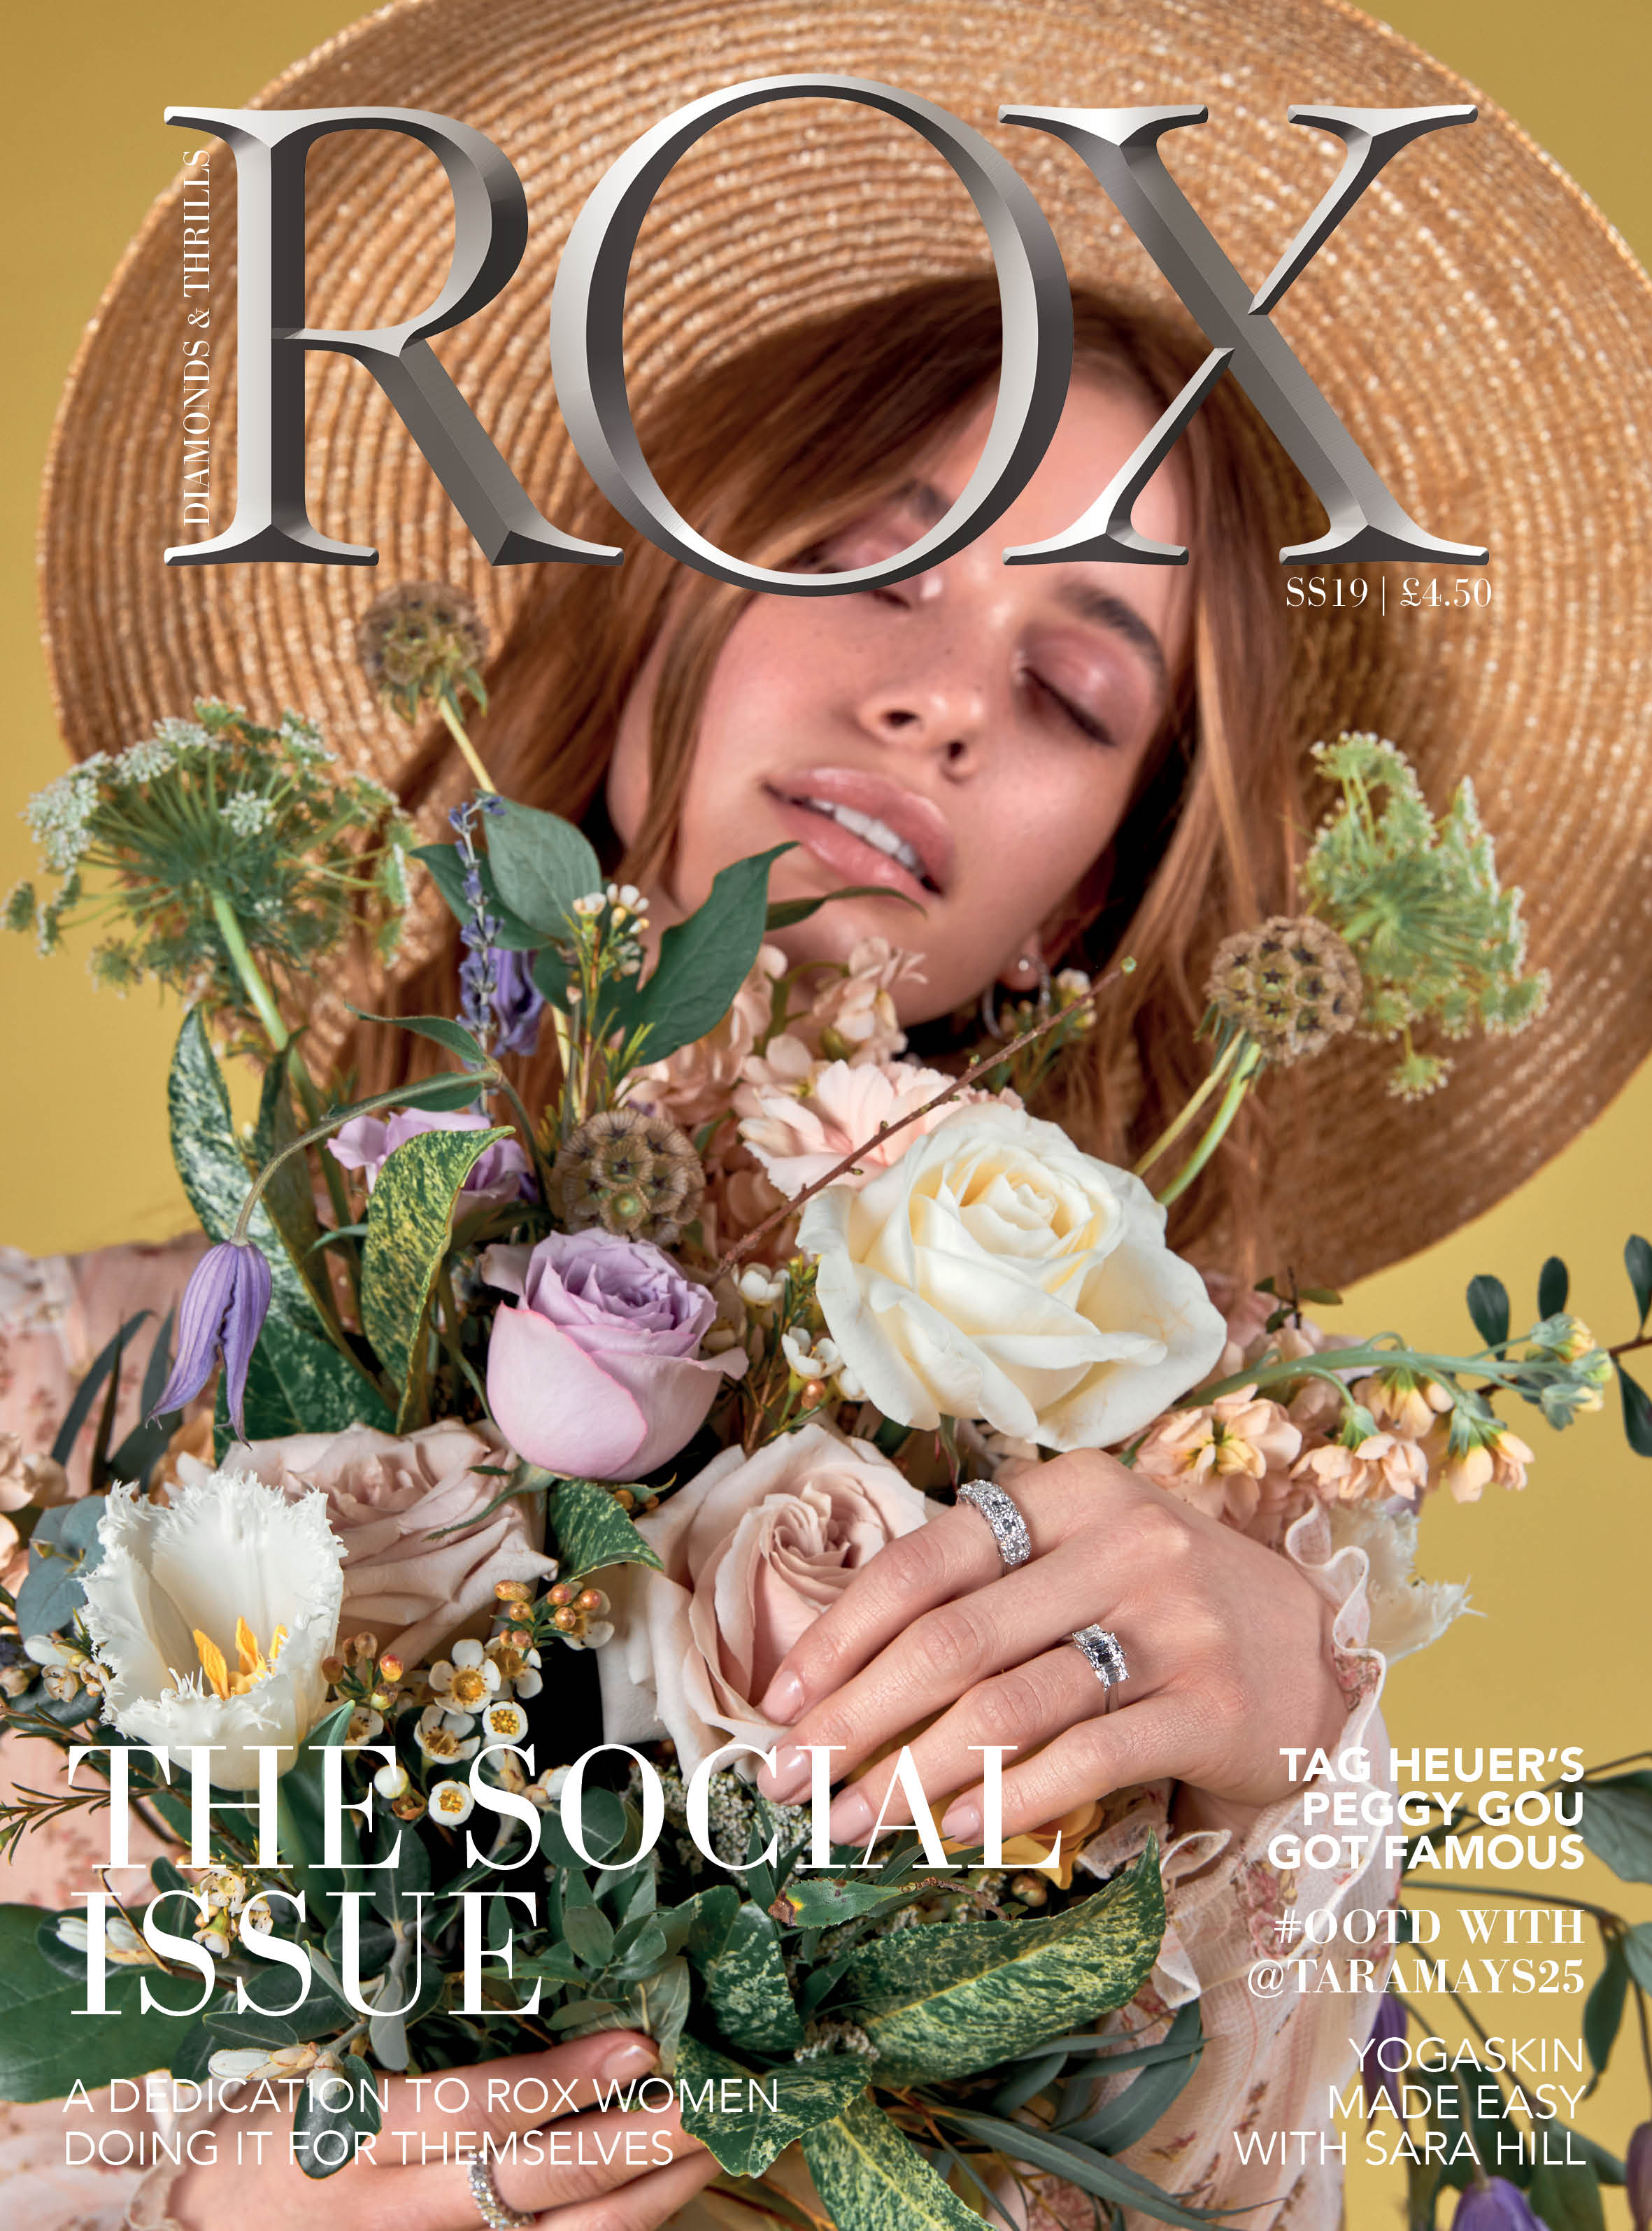 ROX SS19 Woman Cover